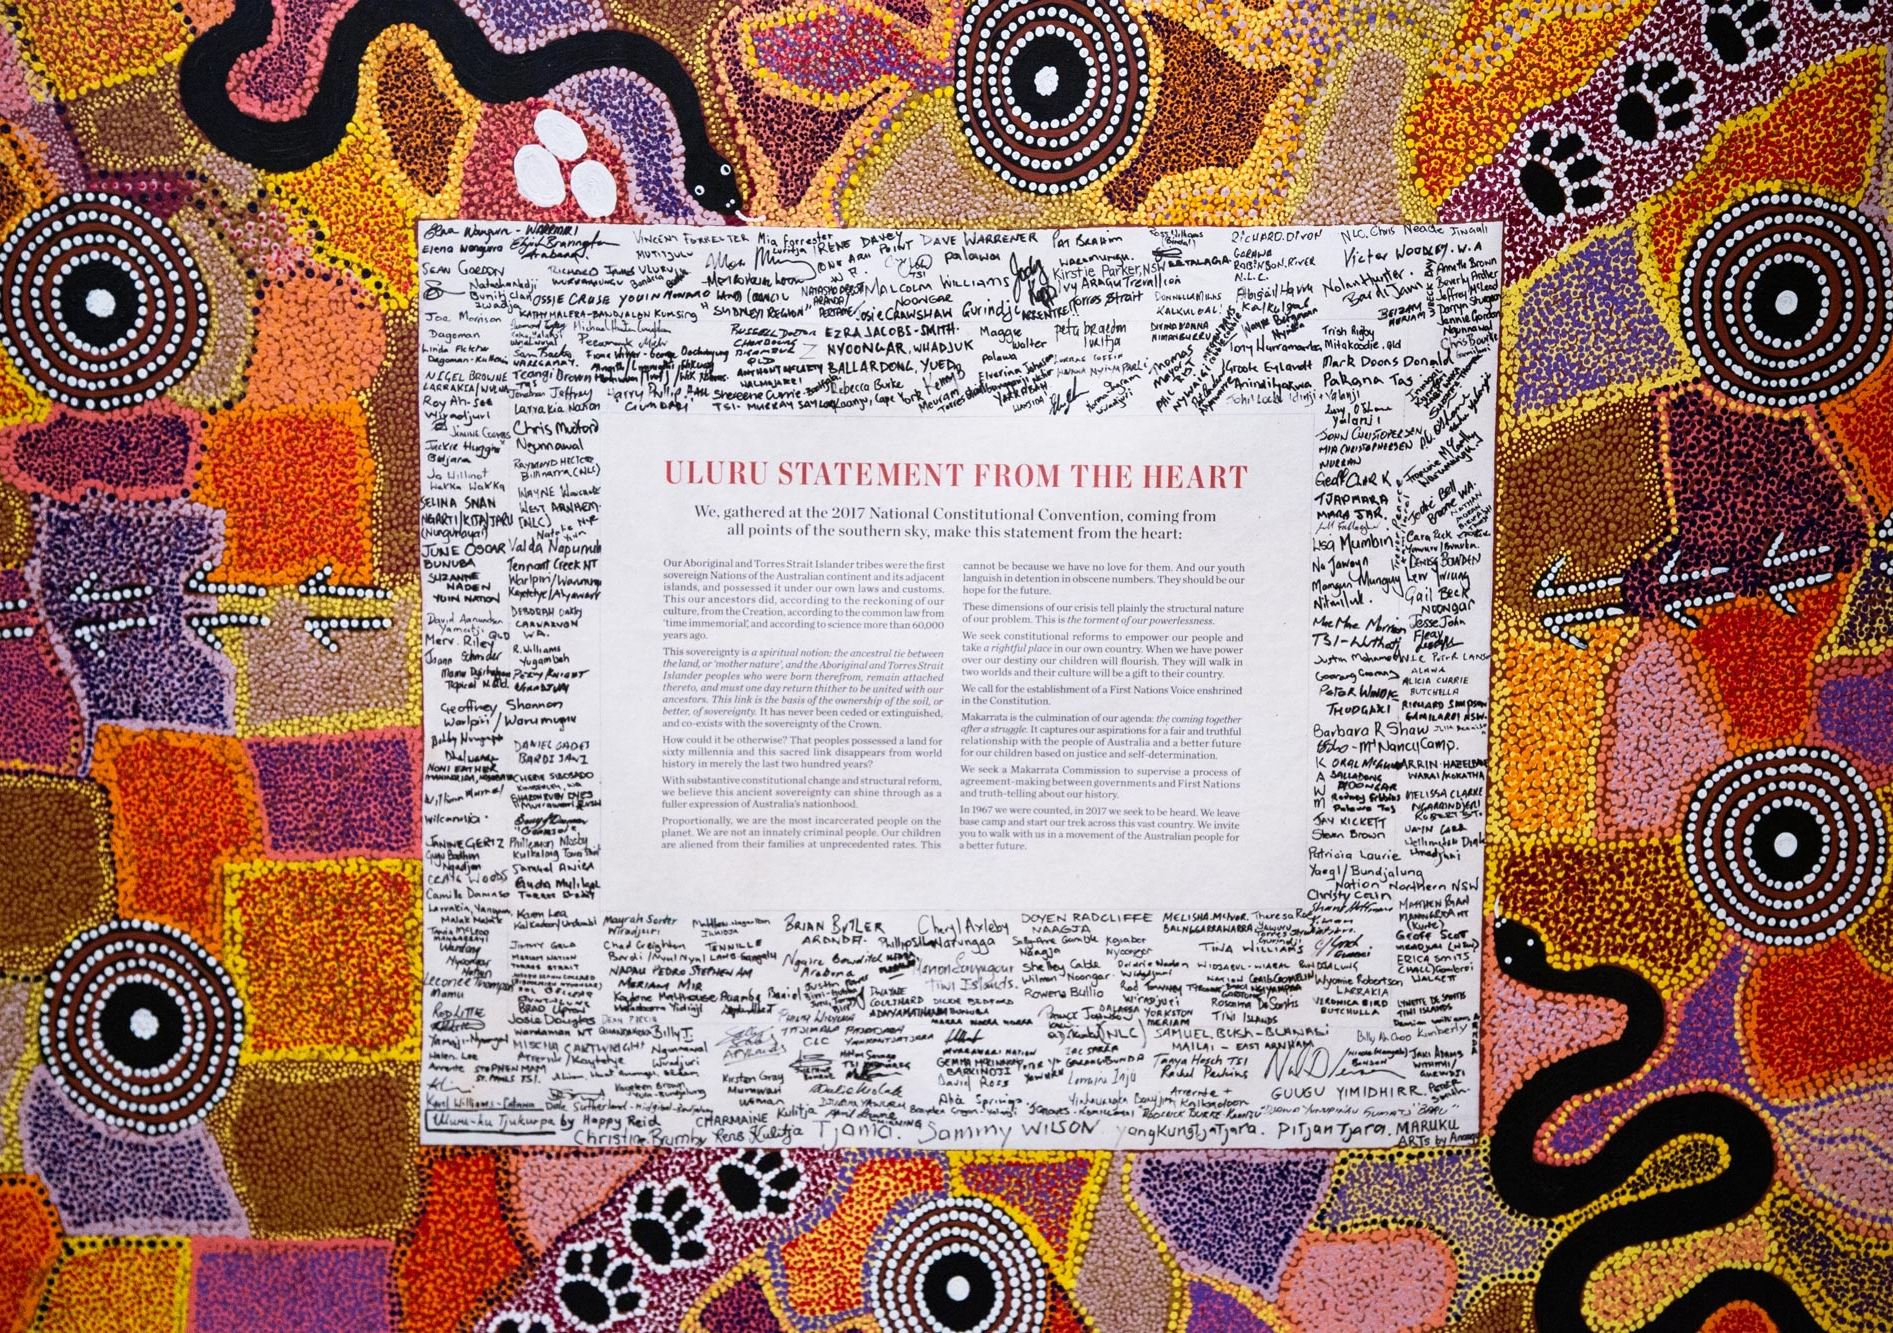 In 2017, Aboriginal and Torres Strait Islander delegates called for a First Nations Voice to Parliament, enshrined in the constitution, as outlined in the Uluru Statement from the Heart. Picture: UNSW Indigenous, Adam Phelan.